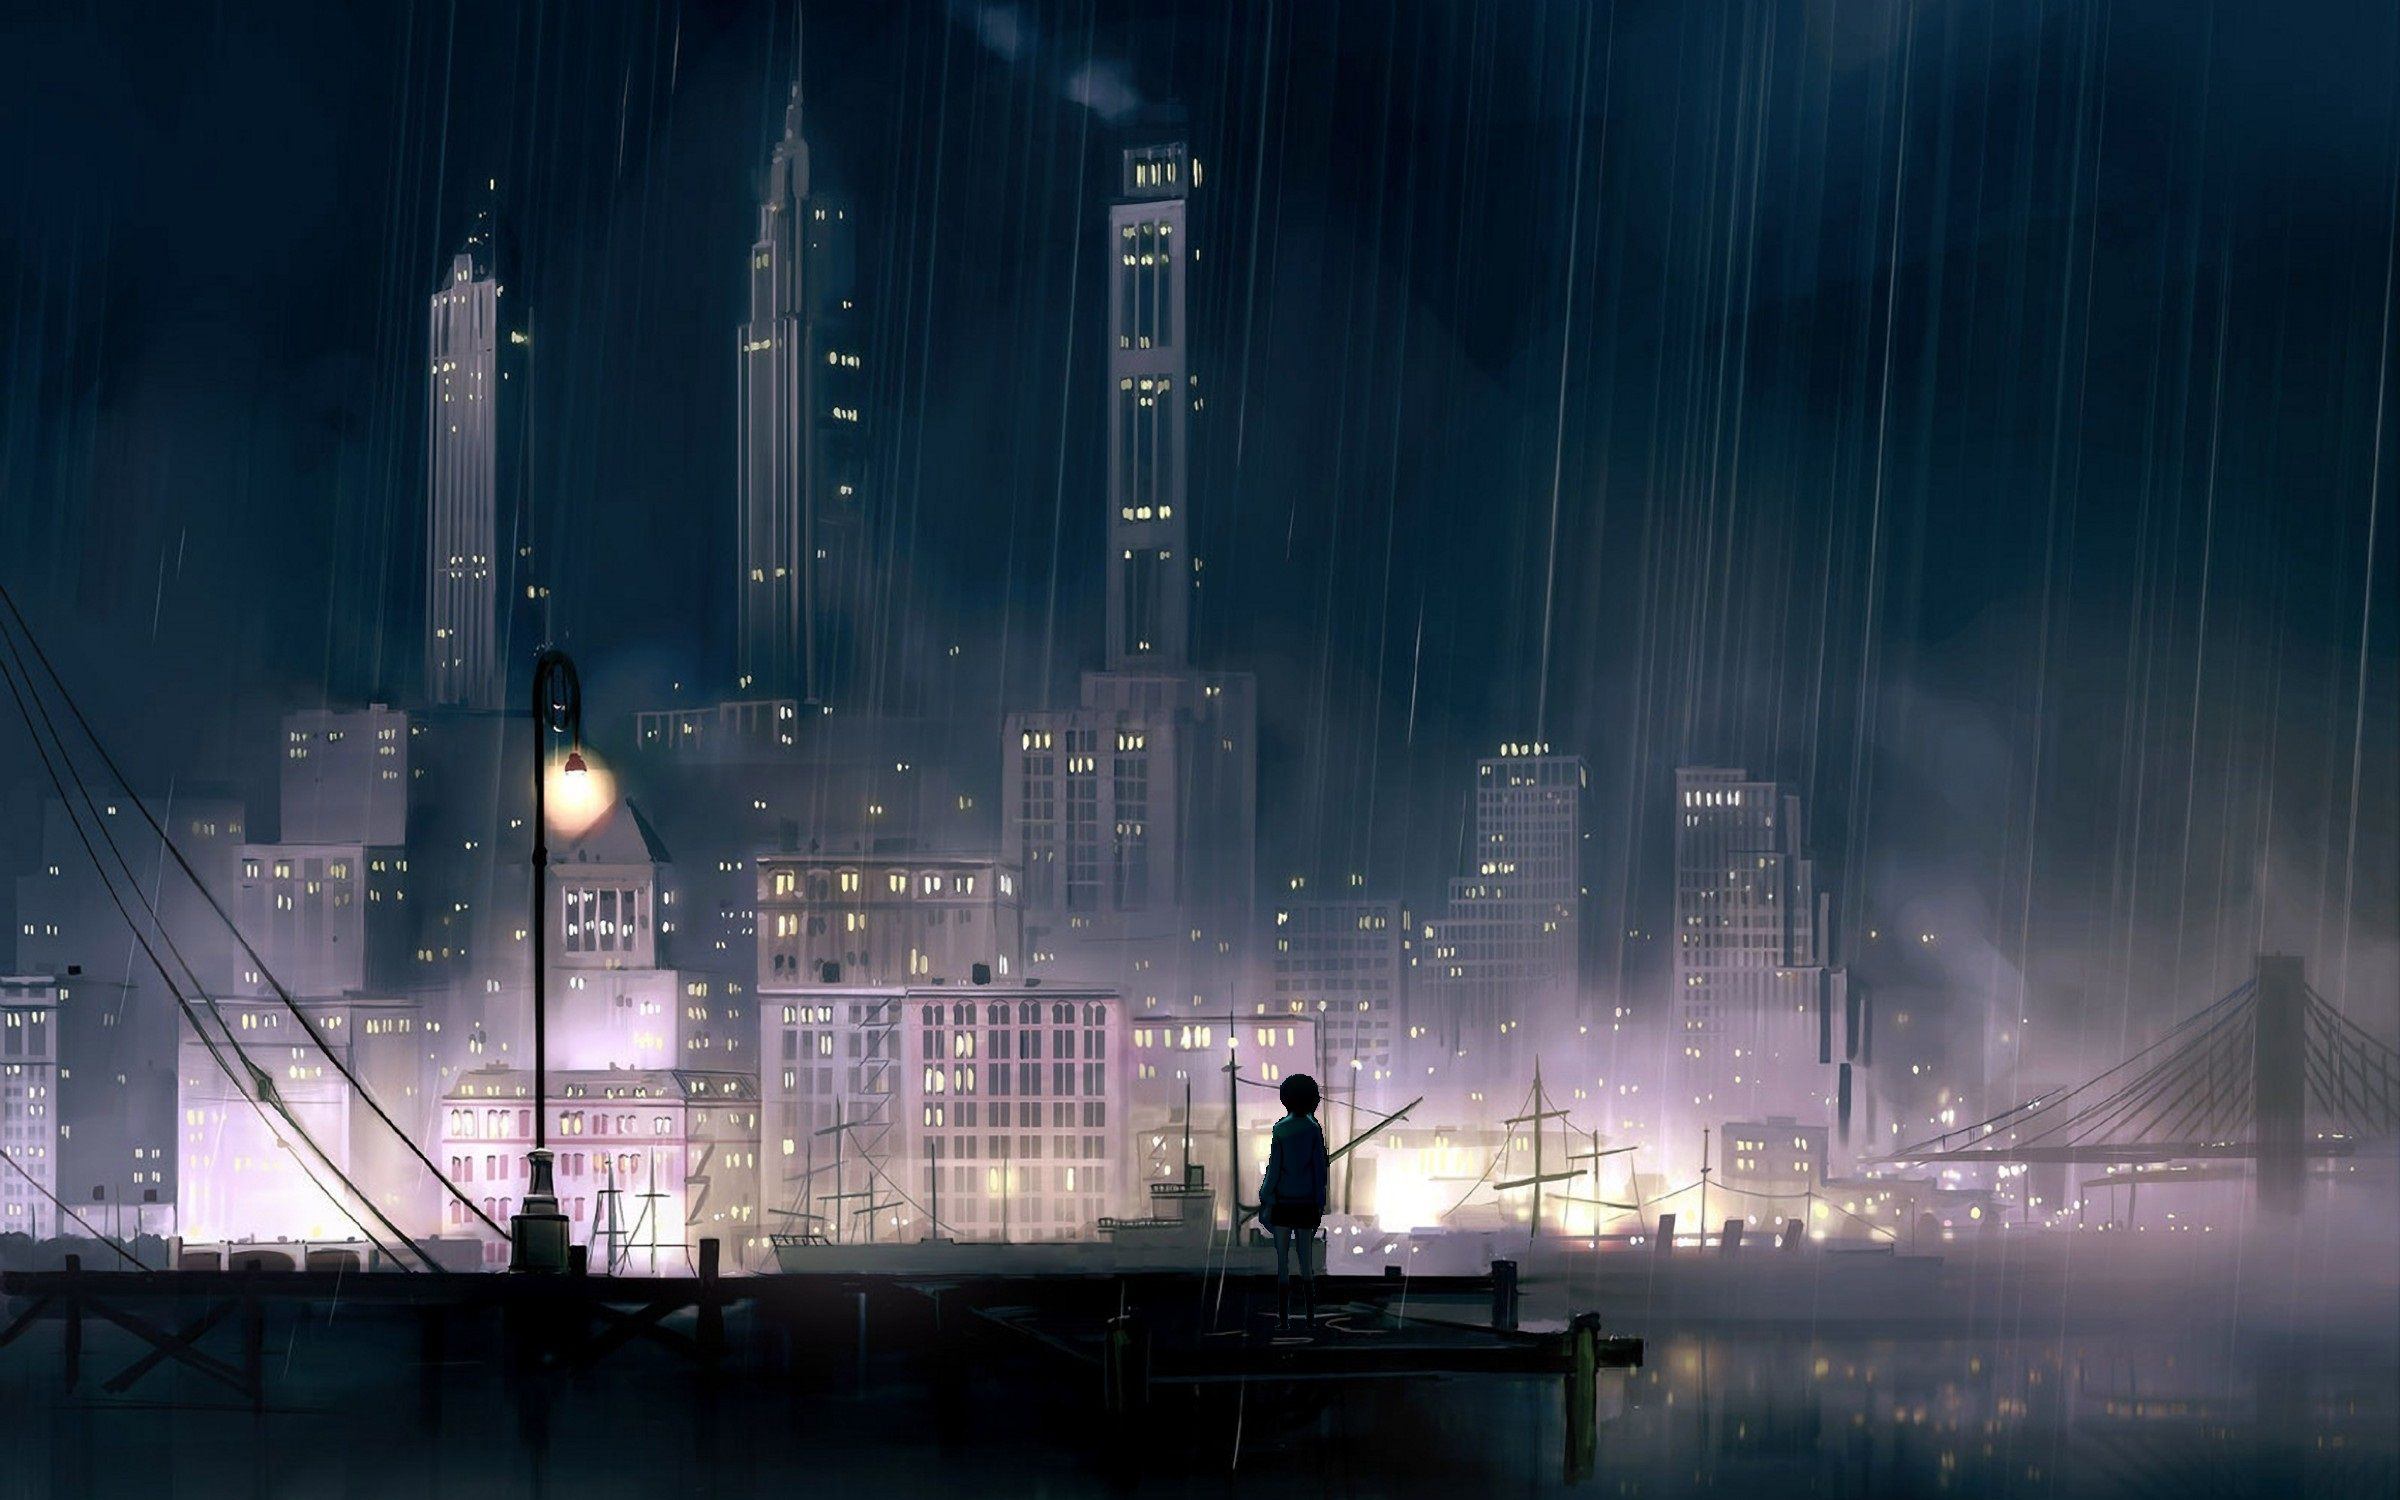 Anime Cityscape wallpaper Anime scenery wallpaper, Rainy